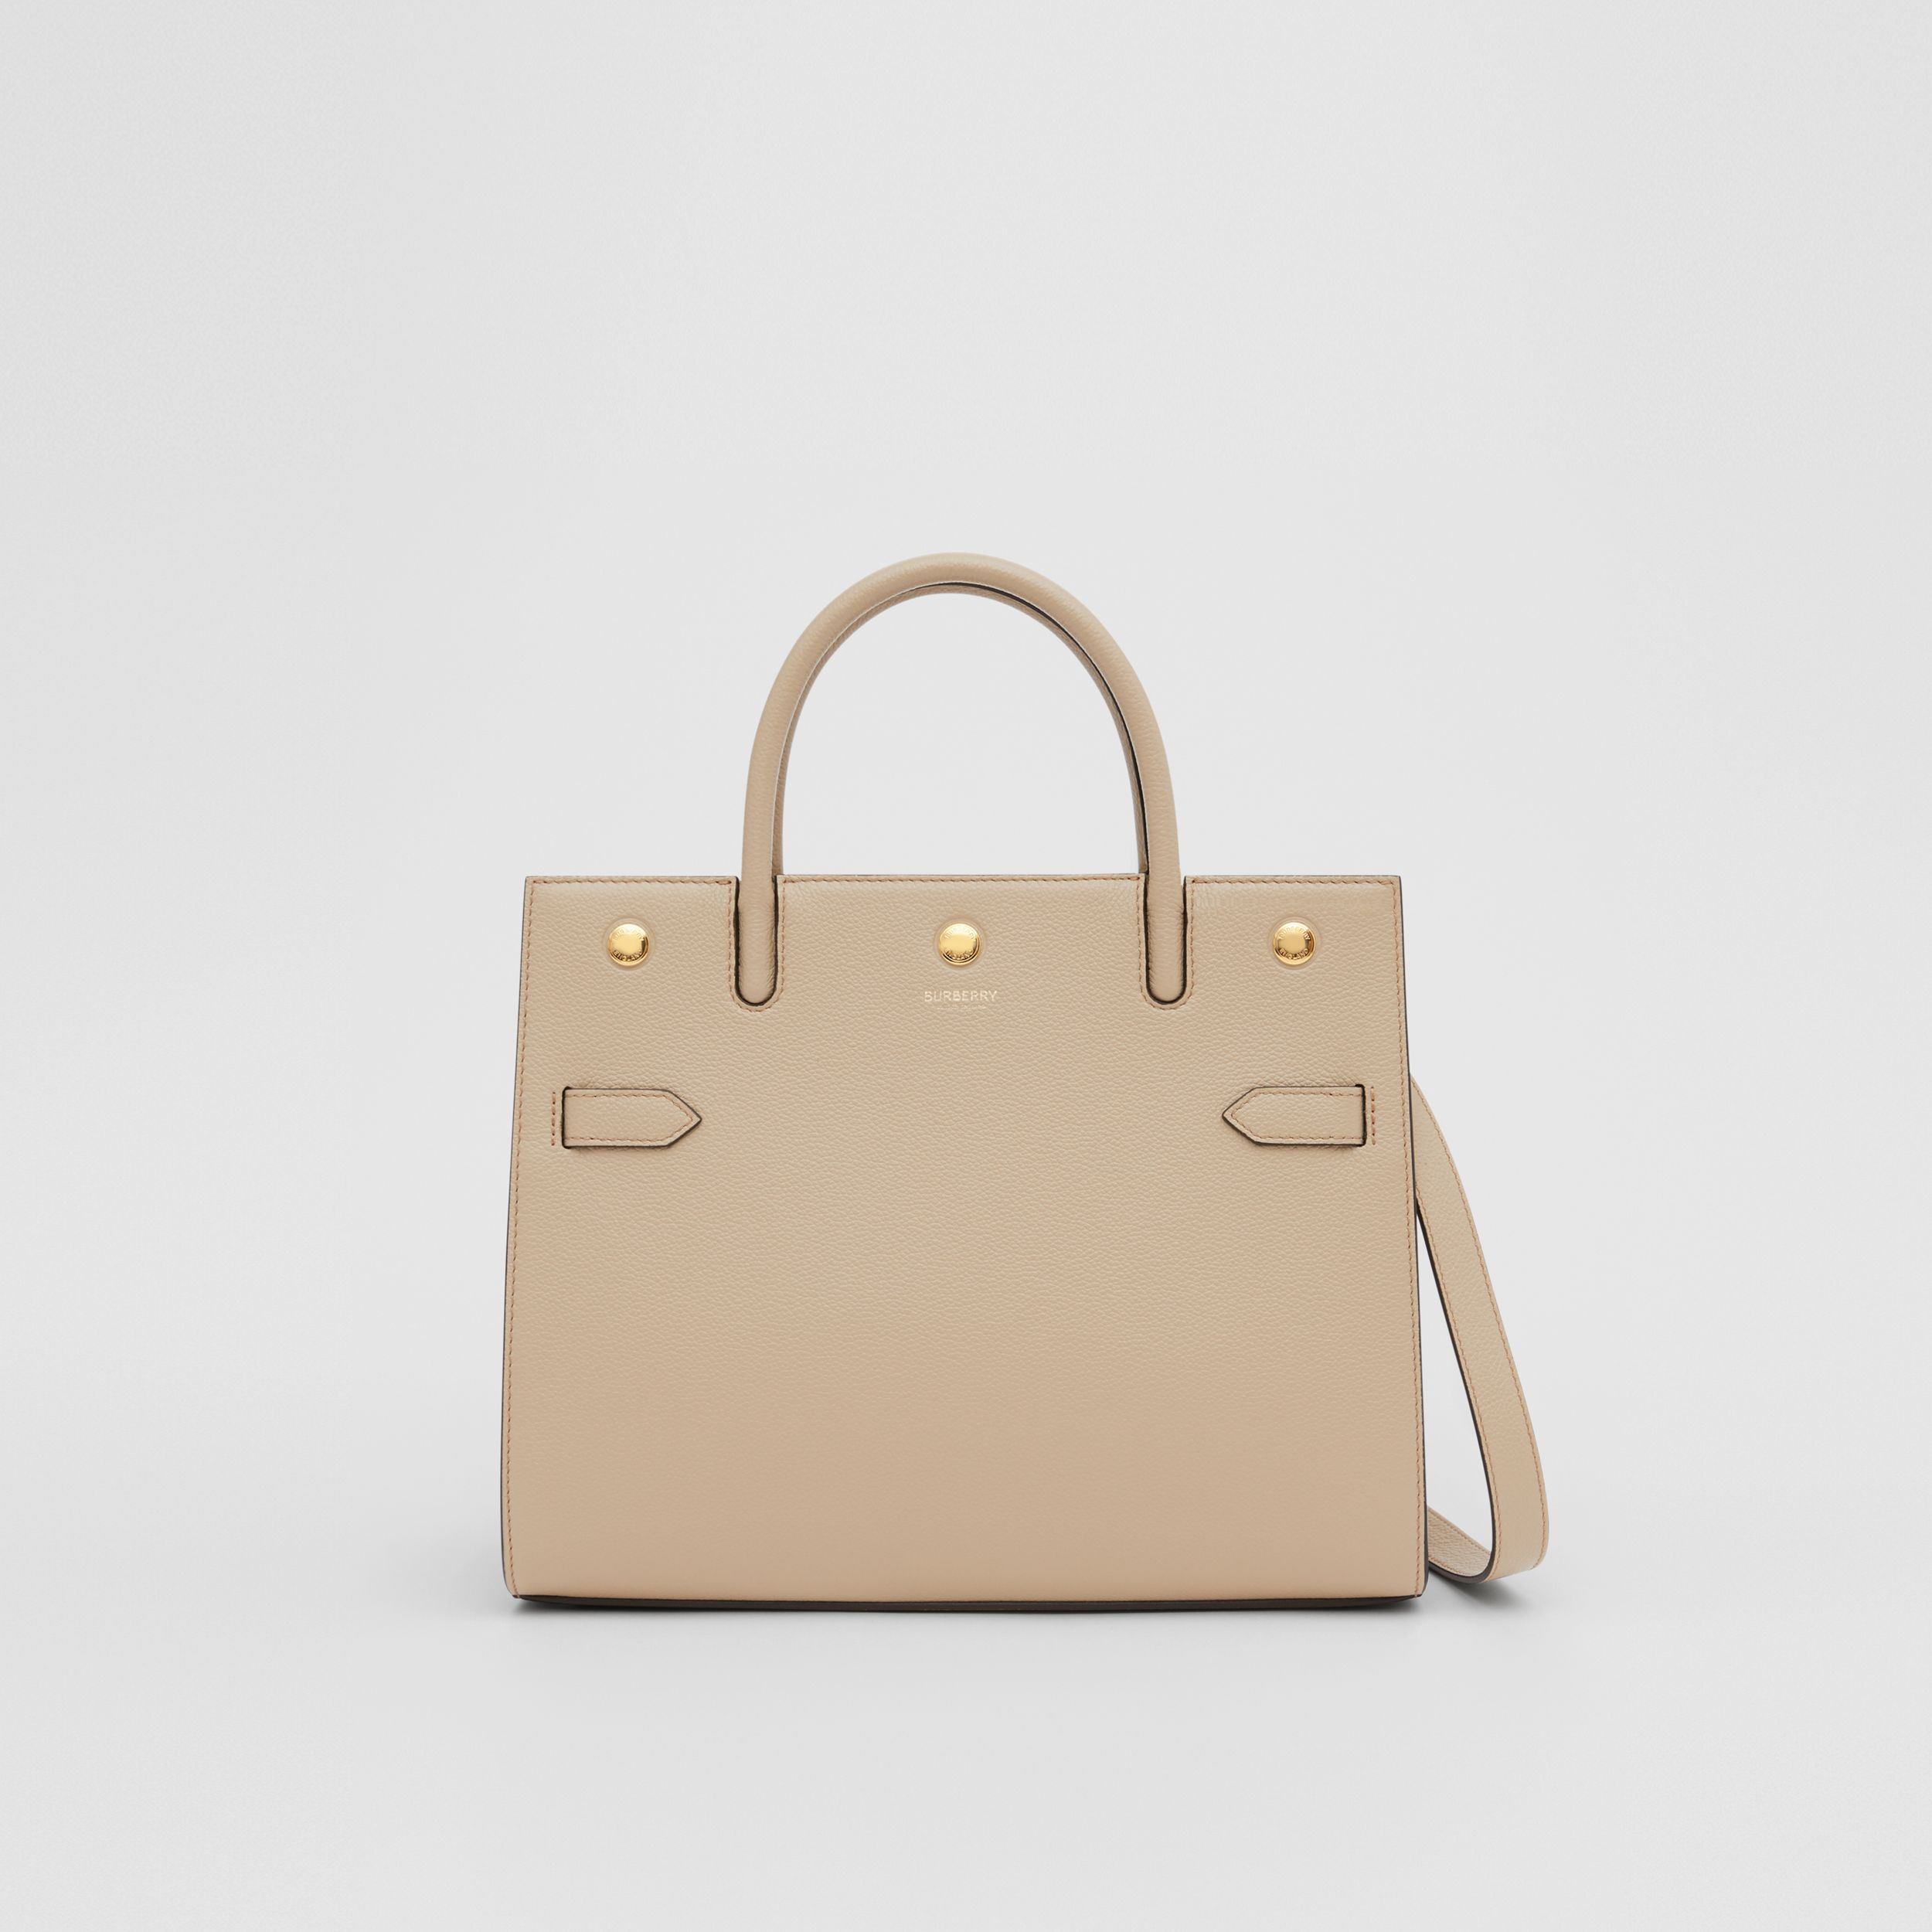 Small Leather Two-handle Title Bag in Light Beige - Women | Burberry - 1